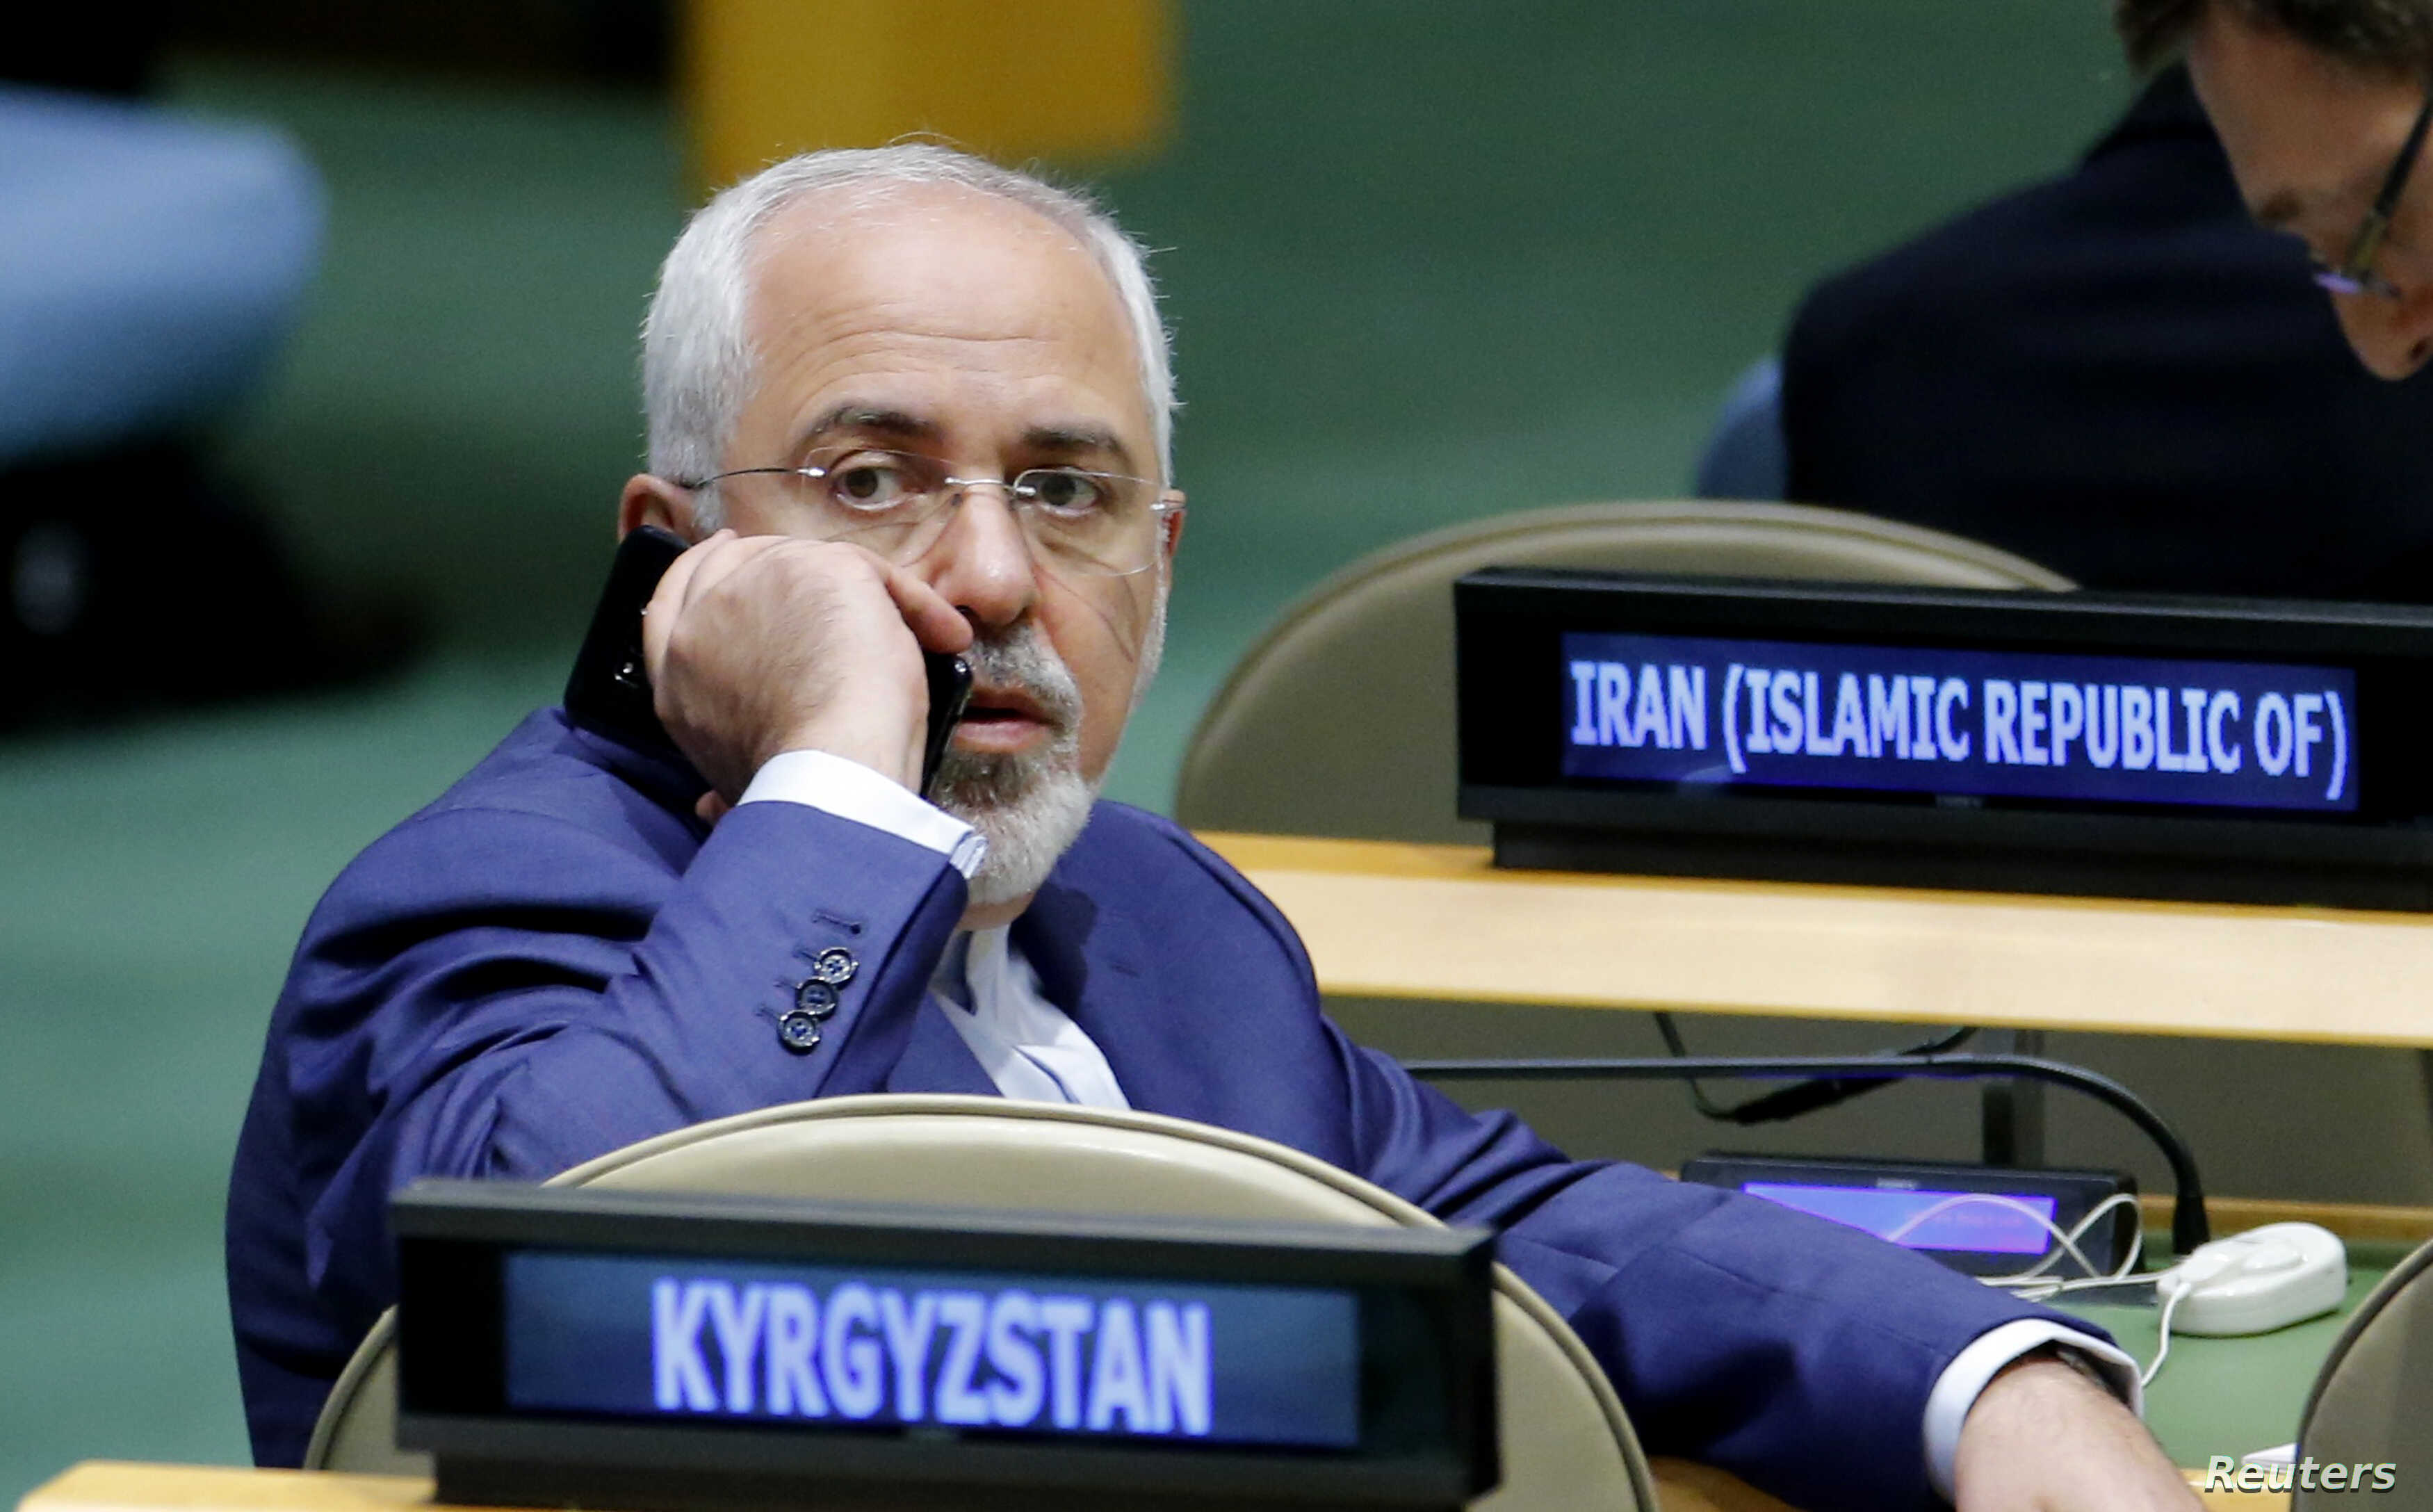 Iranian Foreign Minister Mohammad Javad Zarif attends the 72nd United Nations General Assembly at U.N. Headquarters in New York, Sept. 20, 2017.